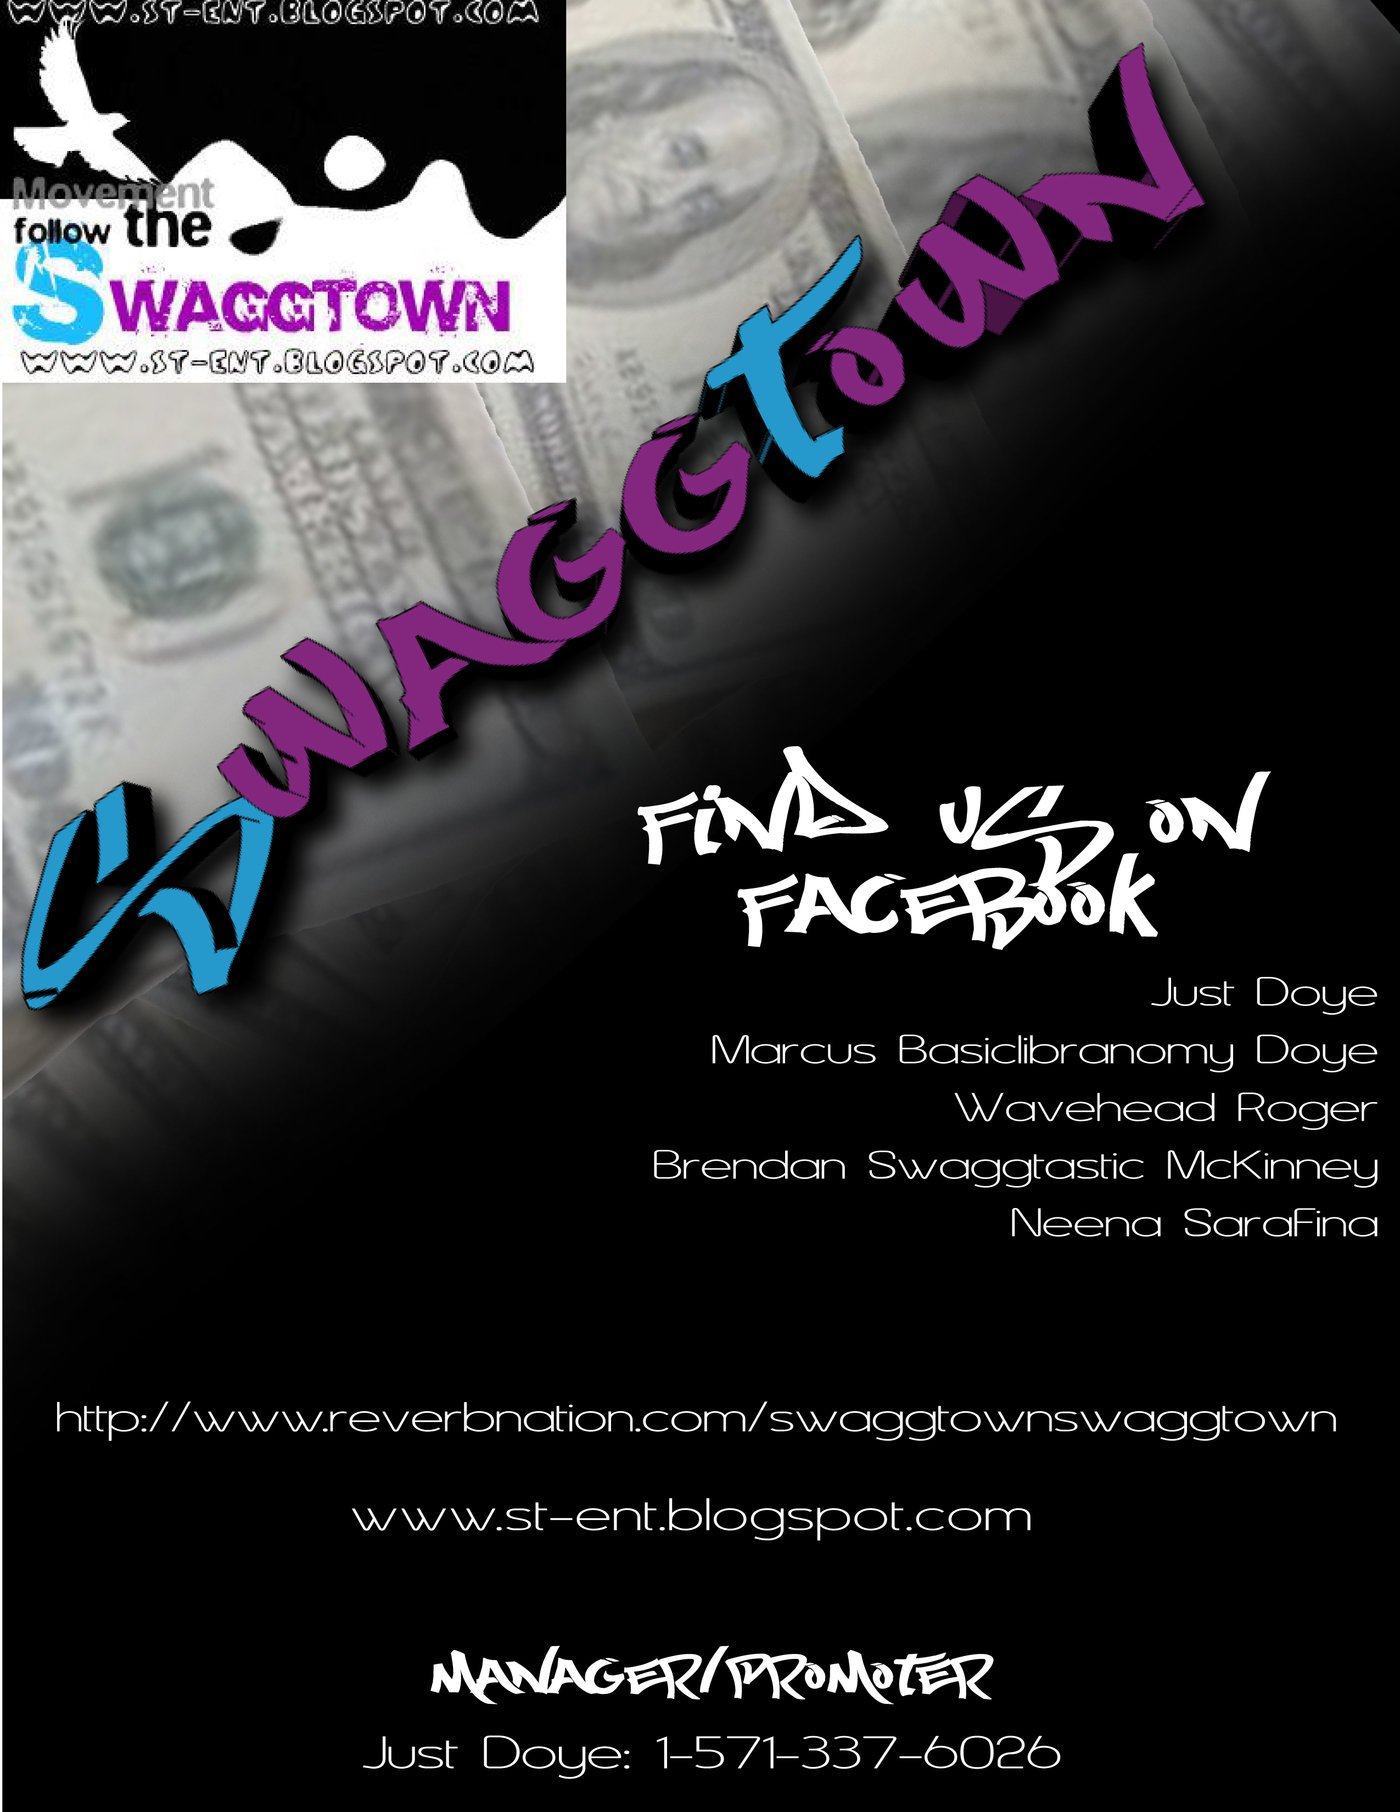 Recent graphic design work by shawn moore at coroflot swaggtown promotion flyer back malvernweather Image collections